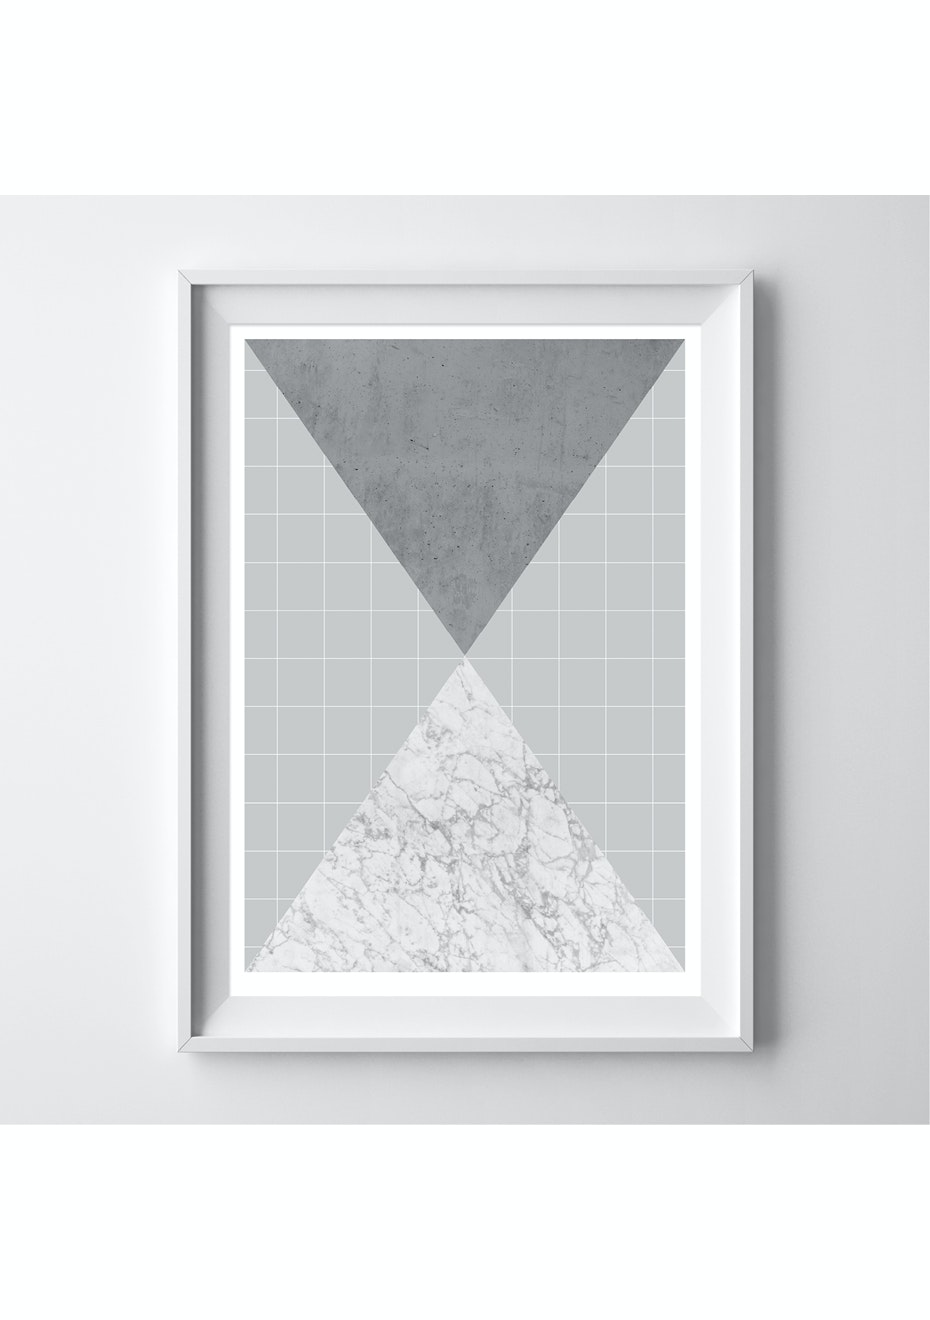 Simply Creative - Mercury - A3 Colour Print